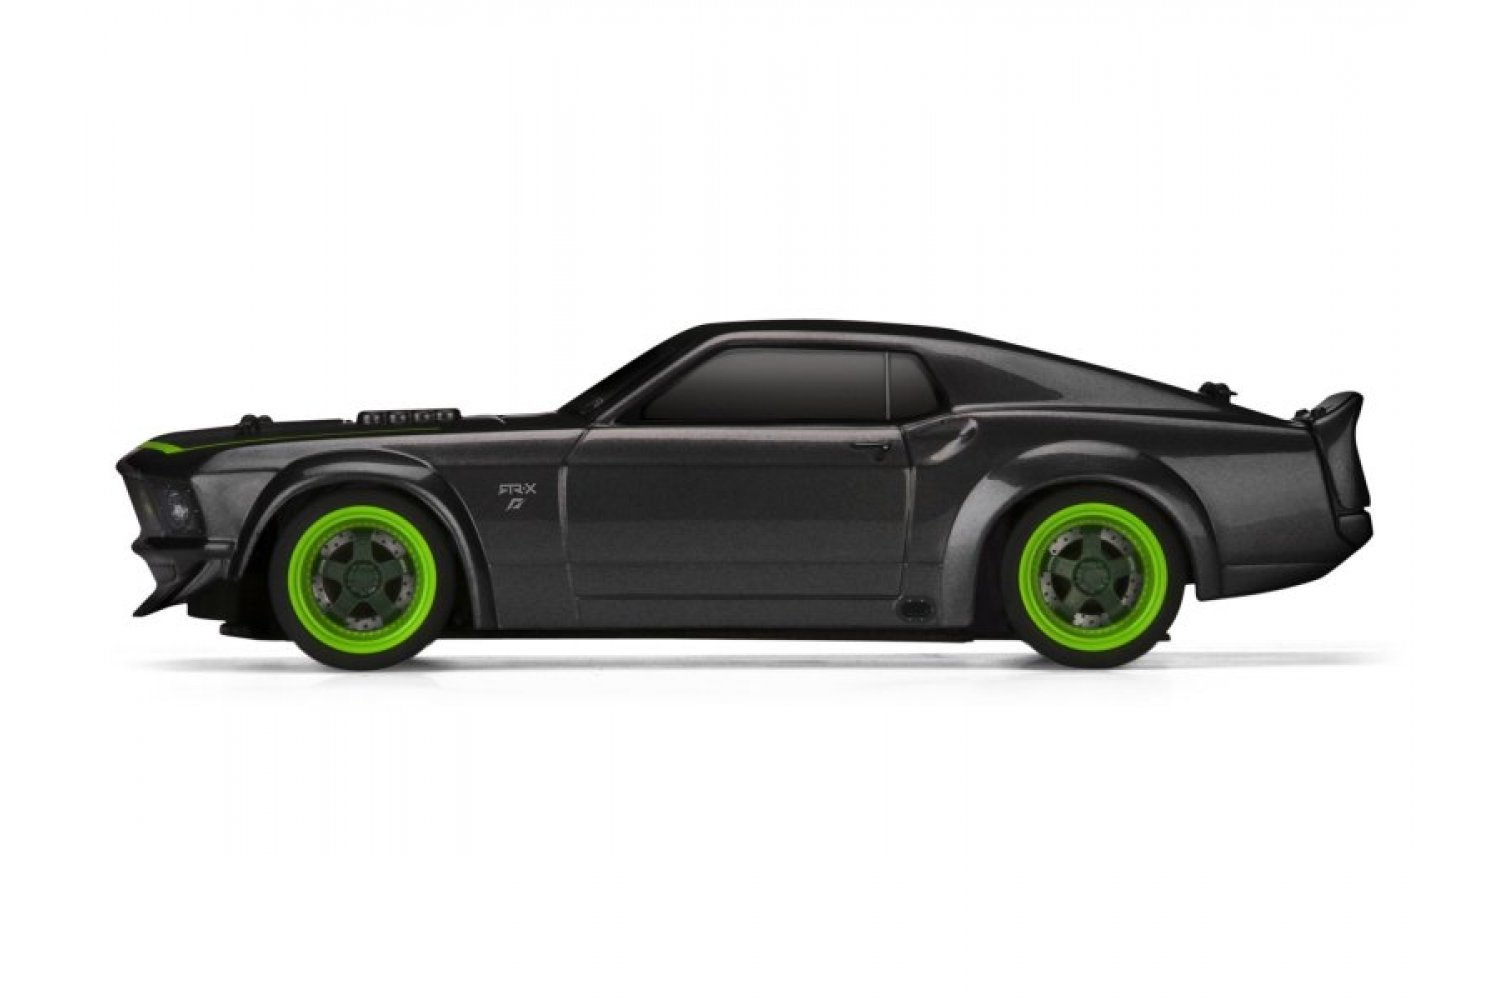 Hpi micro rs4 1 18 1969 ford mustang rtr x painted body shell